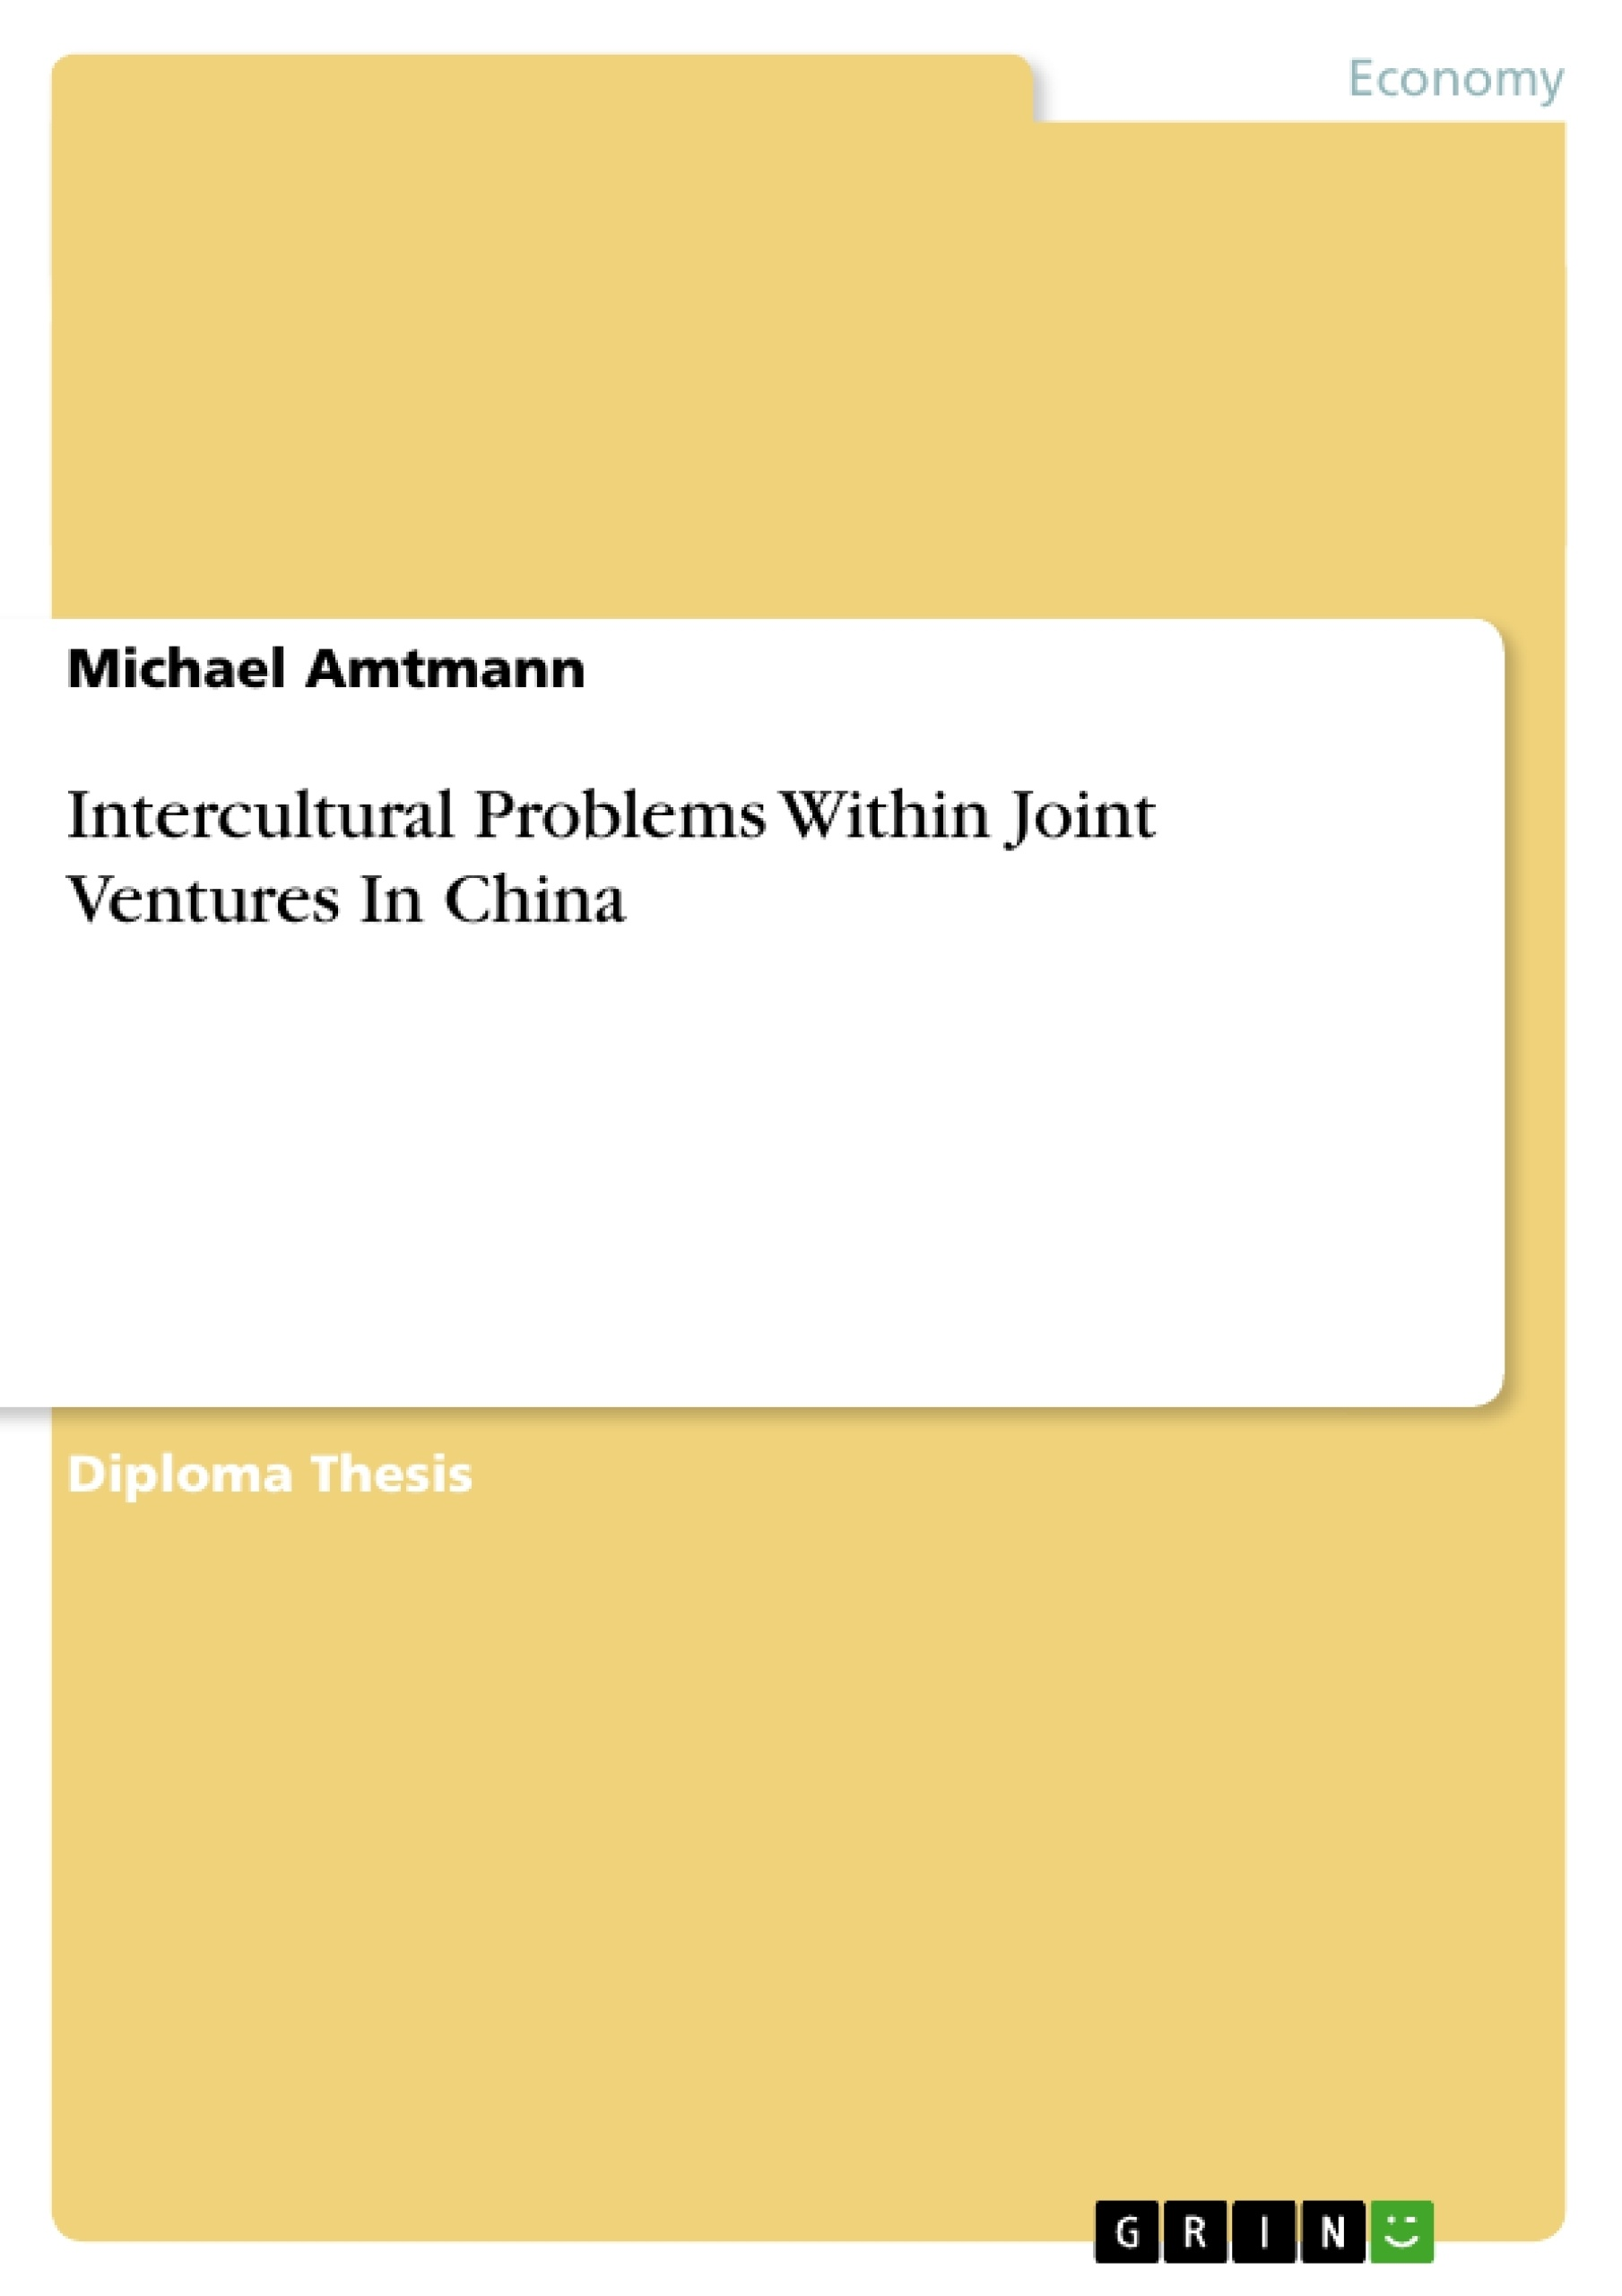 Past lessons for China's new joint ventures